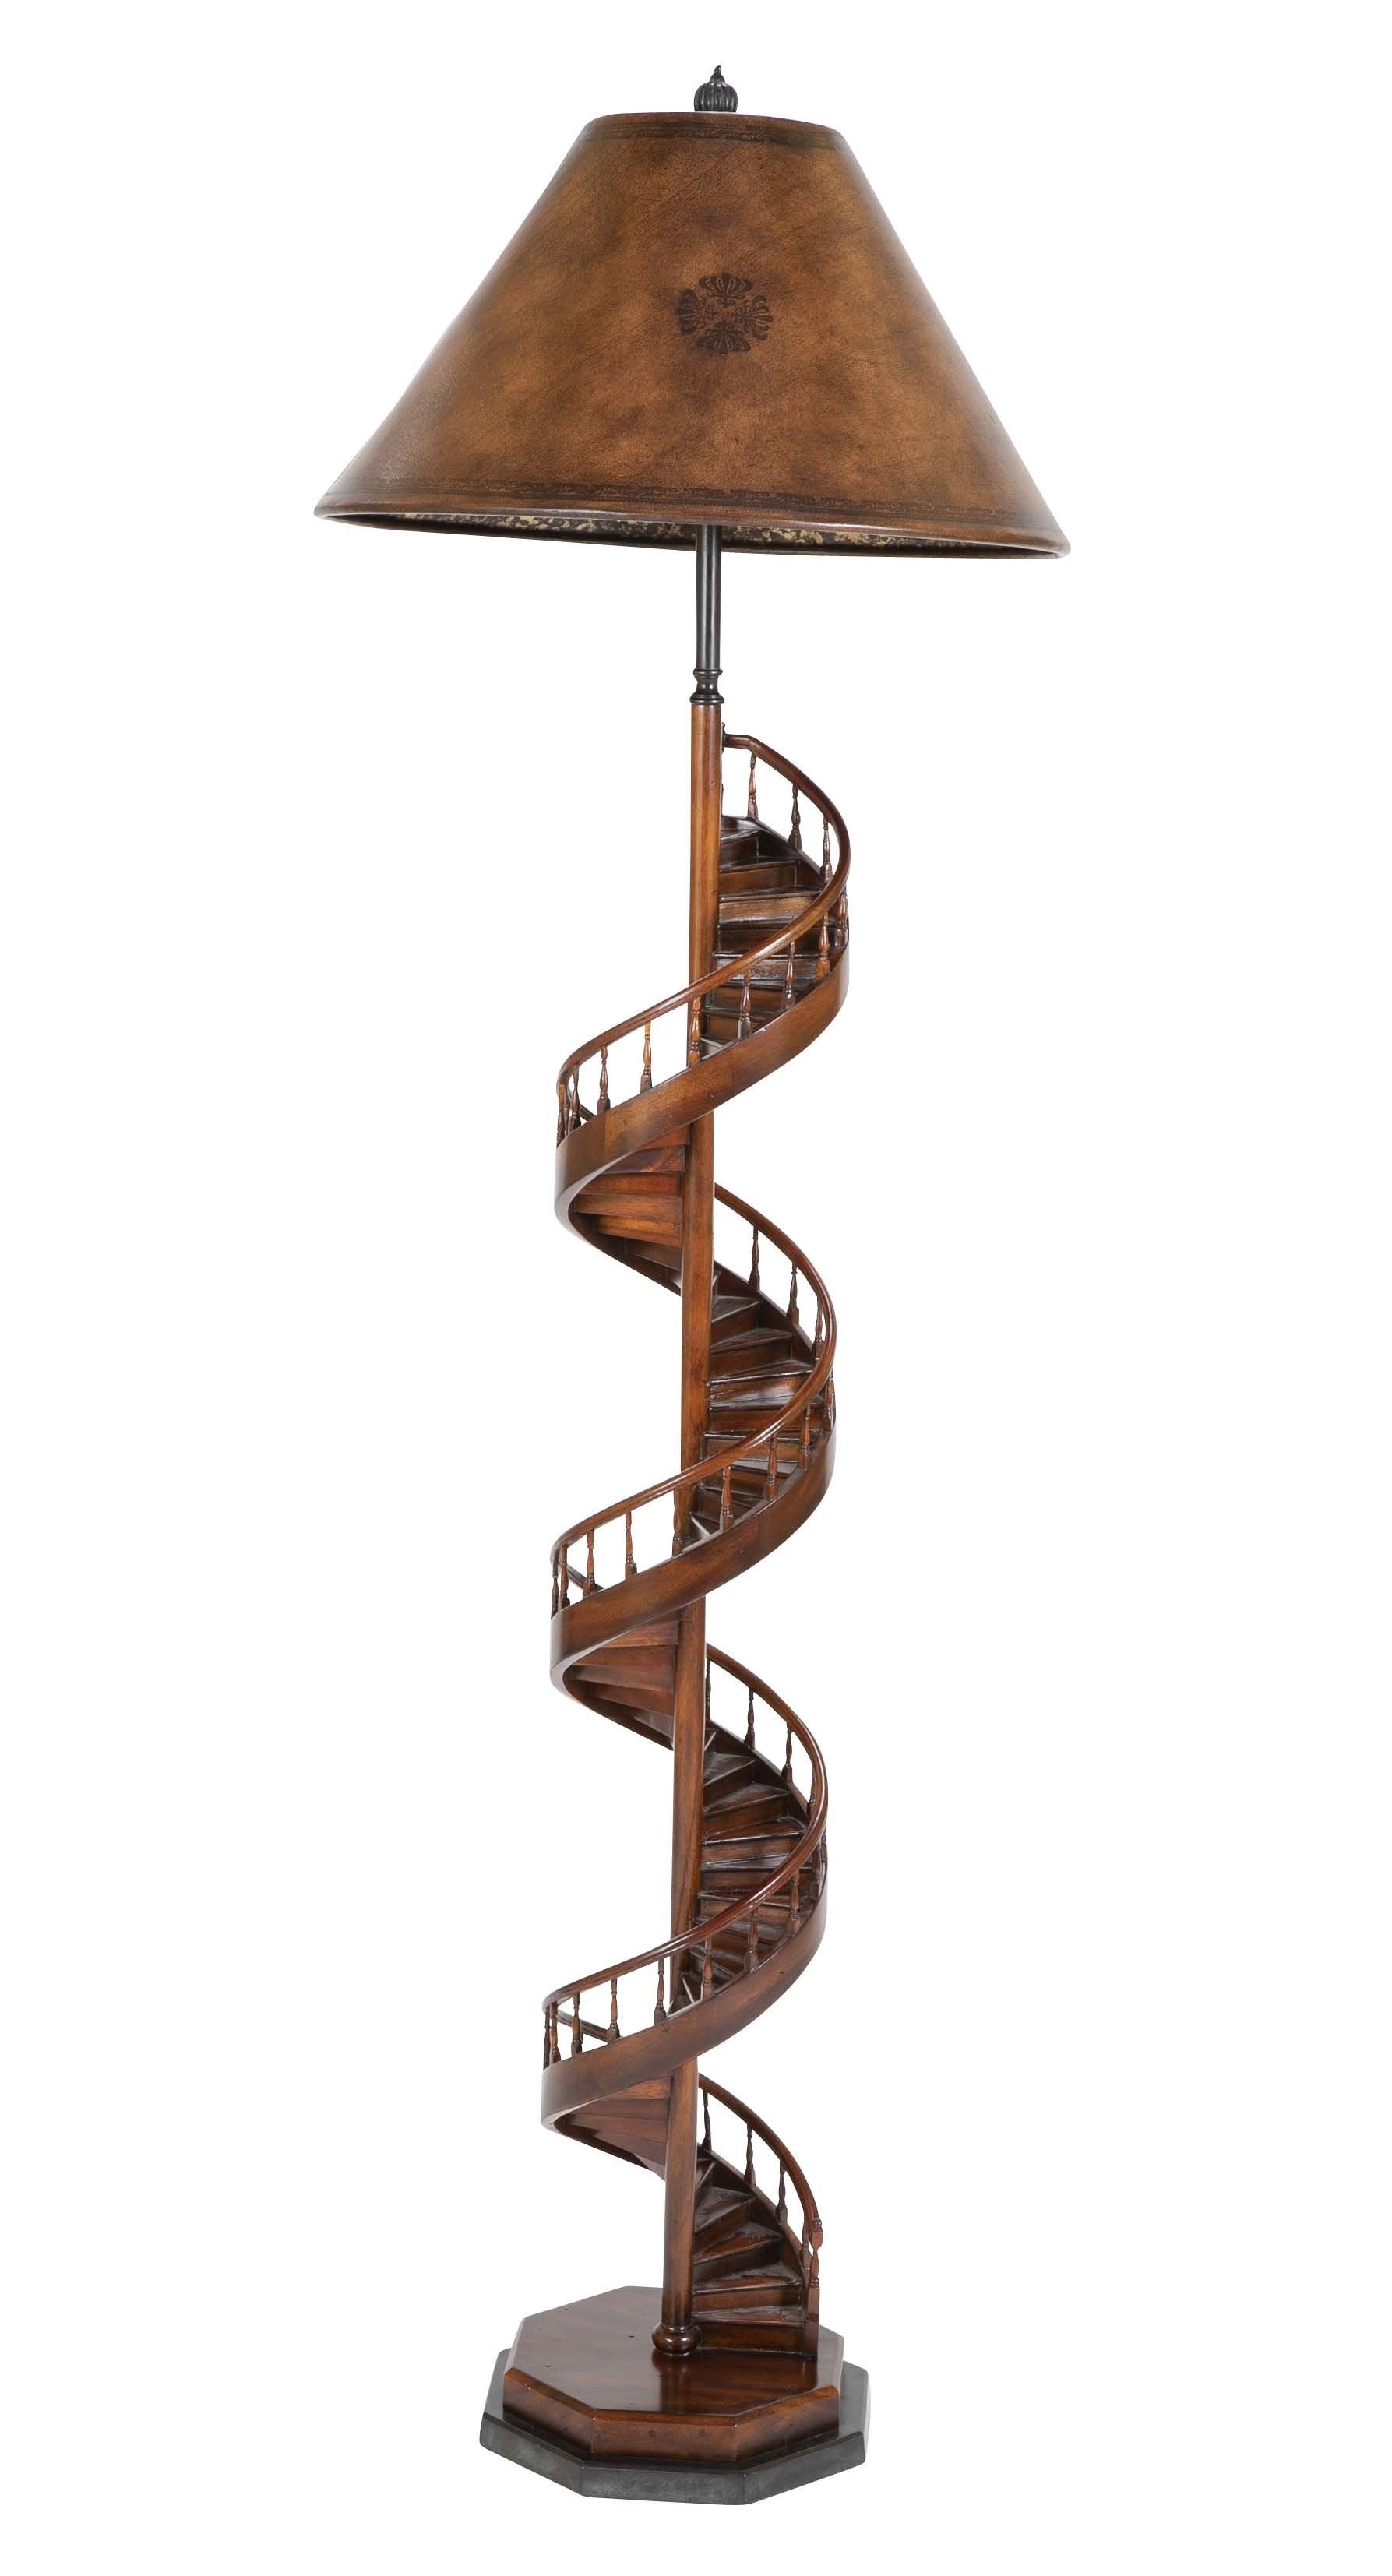 Architects Spiral Staircase Model Floor Lamp Floor Lamp Spiral Staircase Lamp